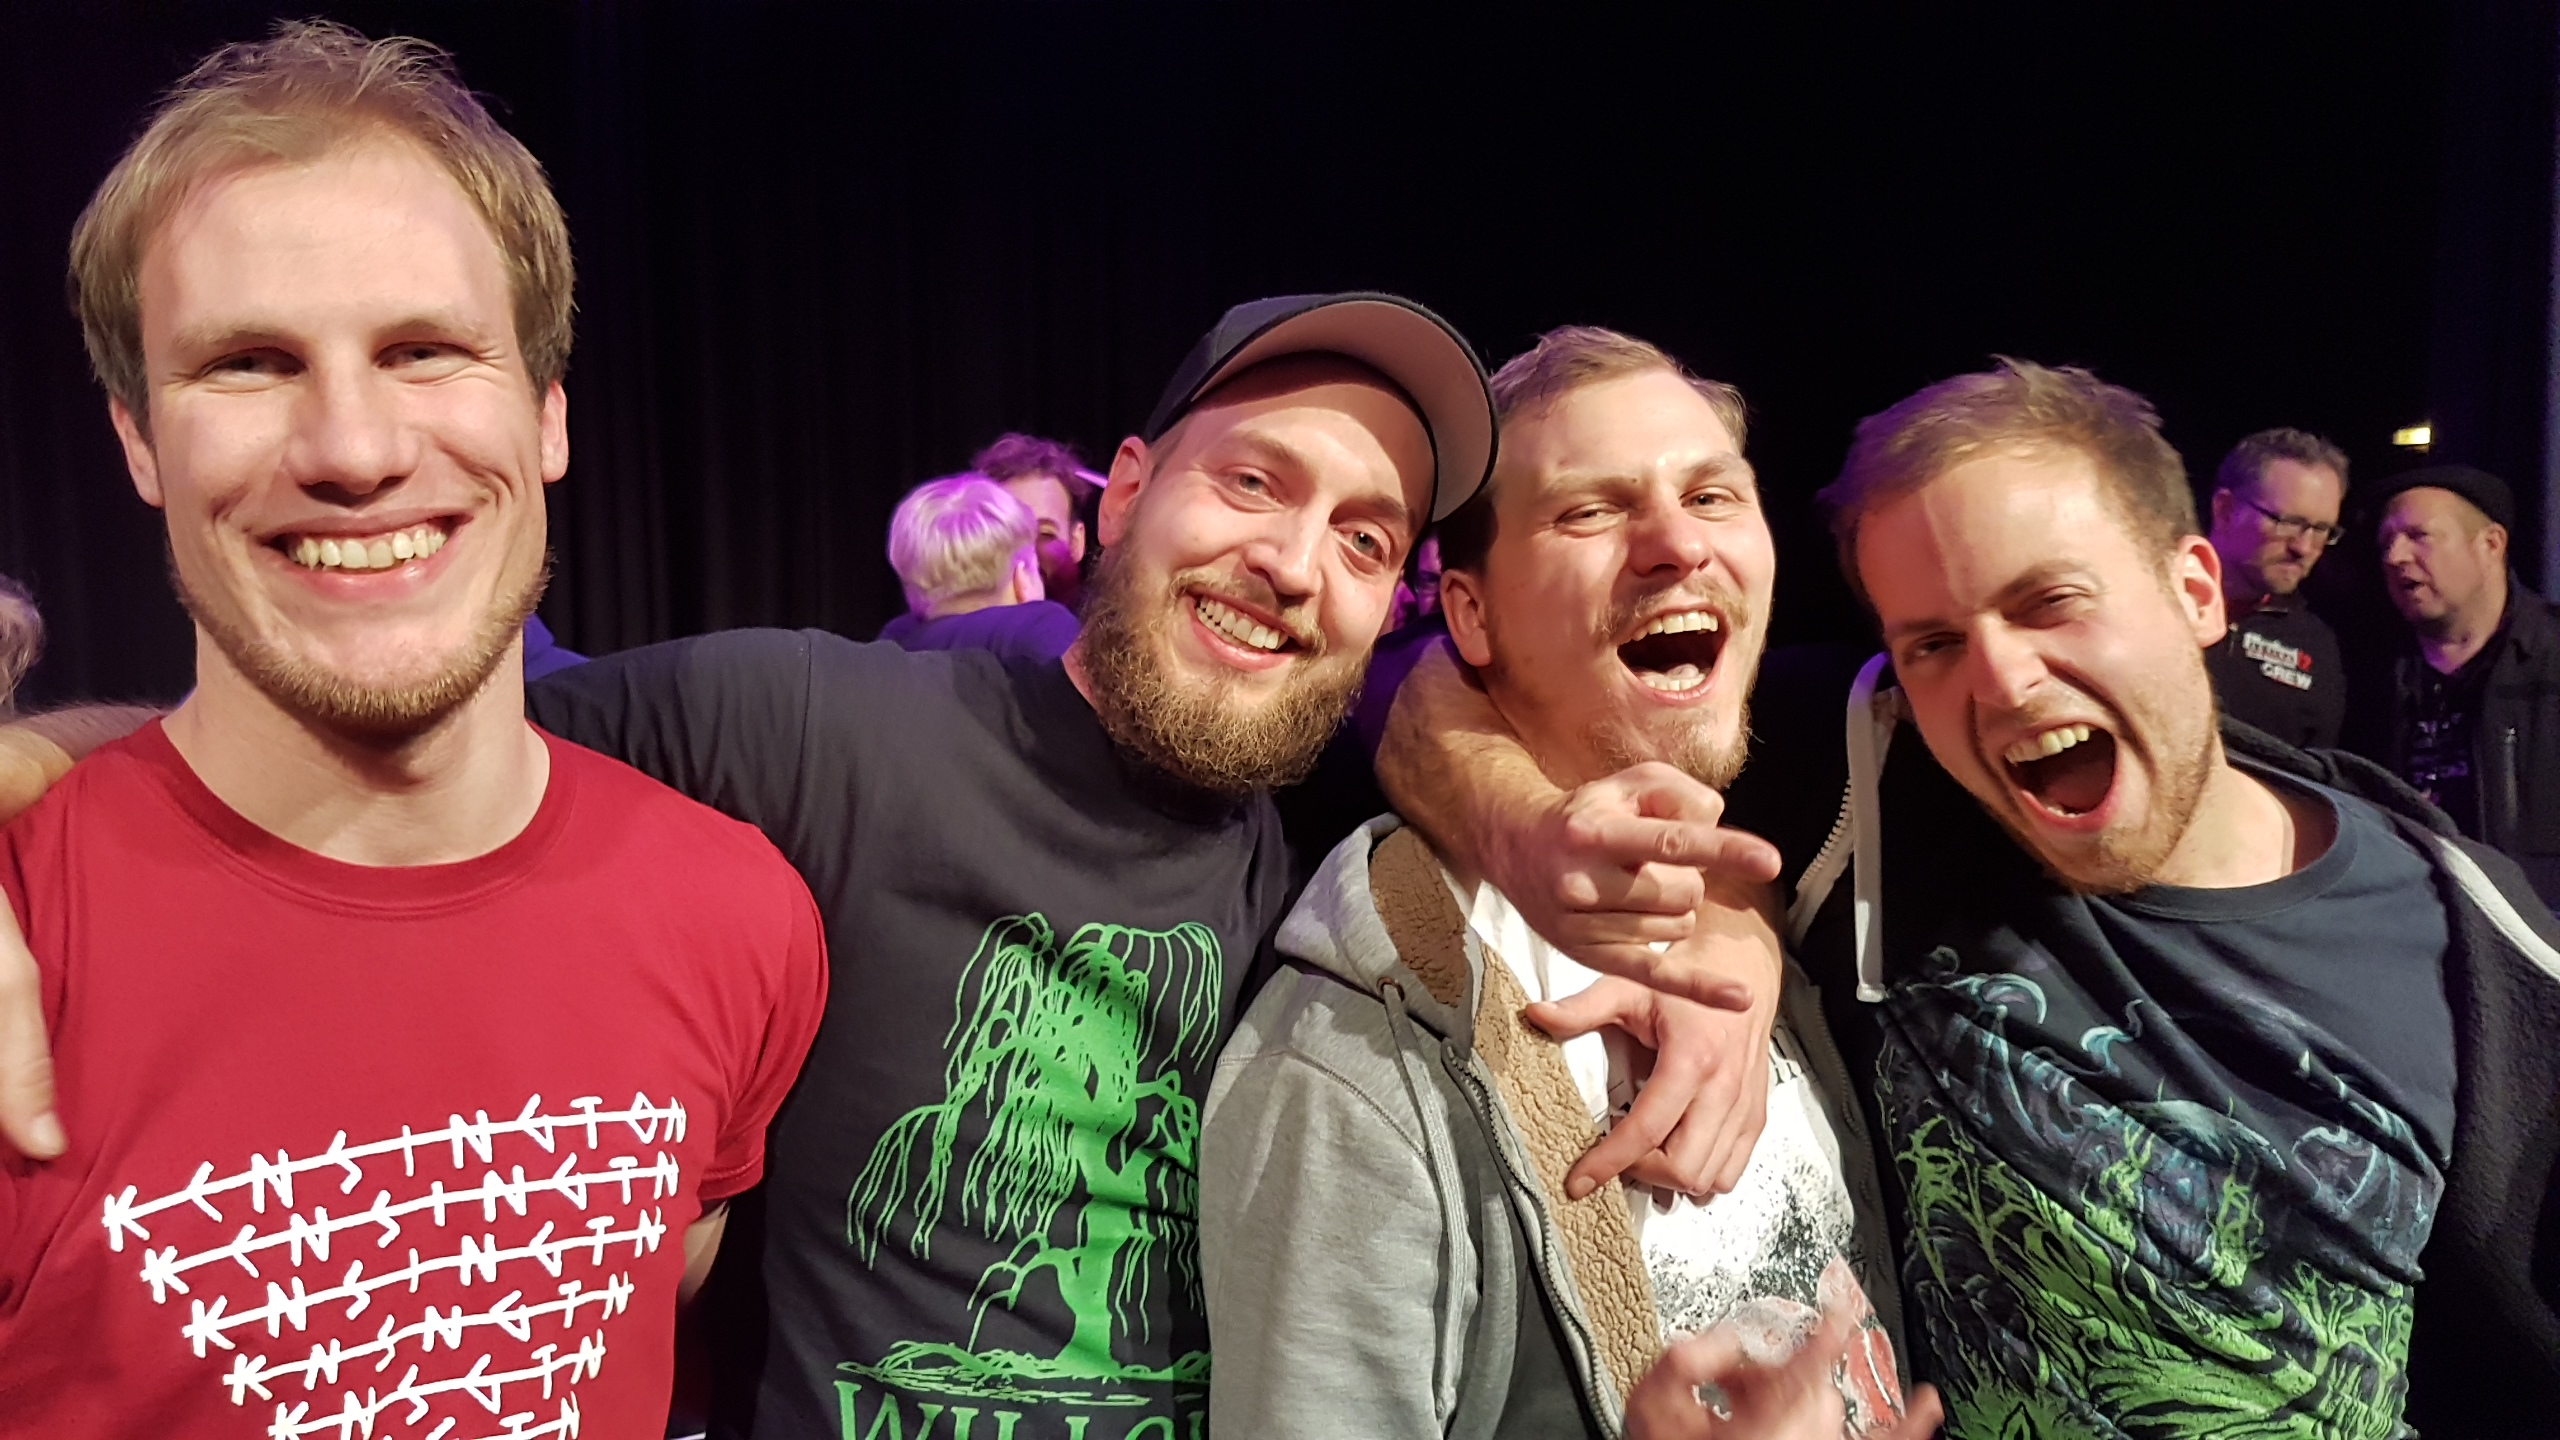 Called to mind Gewinnerband von Rock in der Region im Finale am 07.12.2018